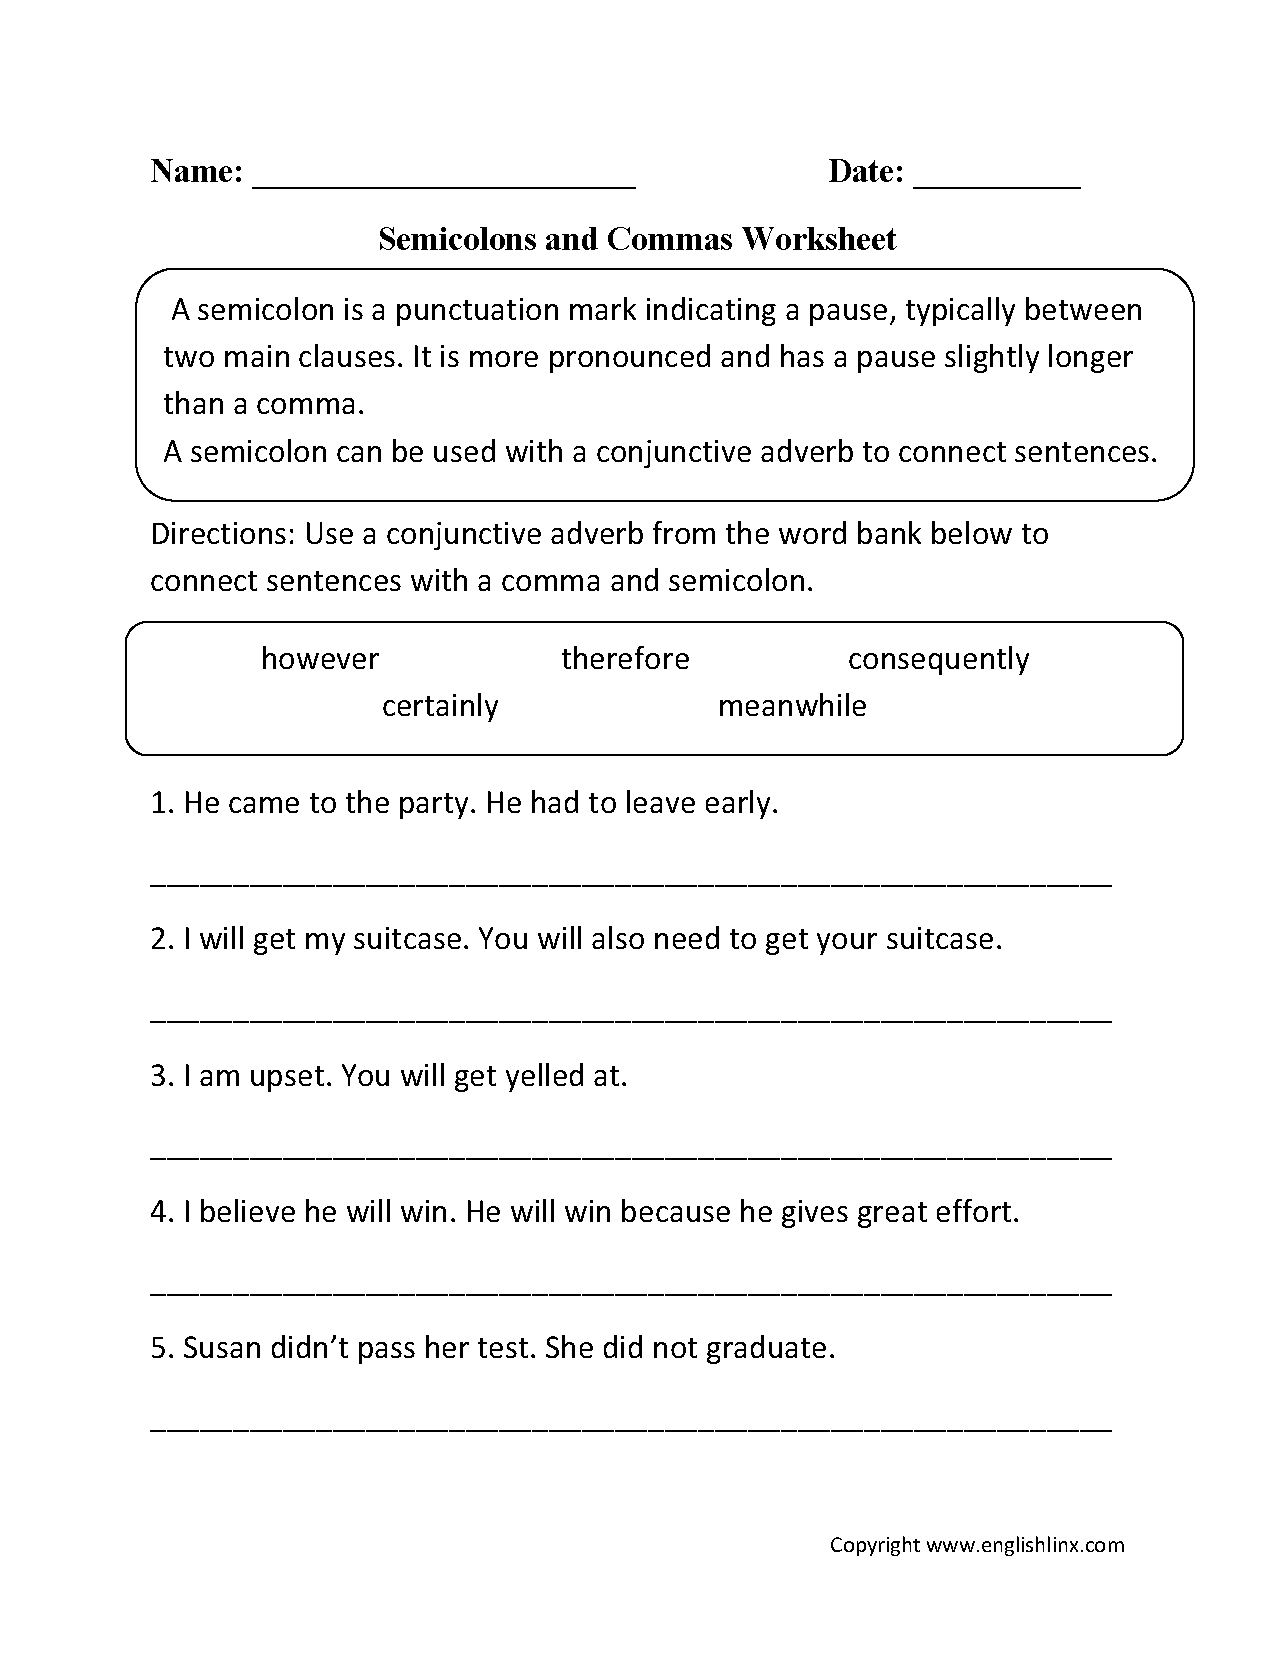 Worksheets Conjunctive Adverbs Worksheet semicolon and commas worksheet writing pinterest worksheet